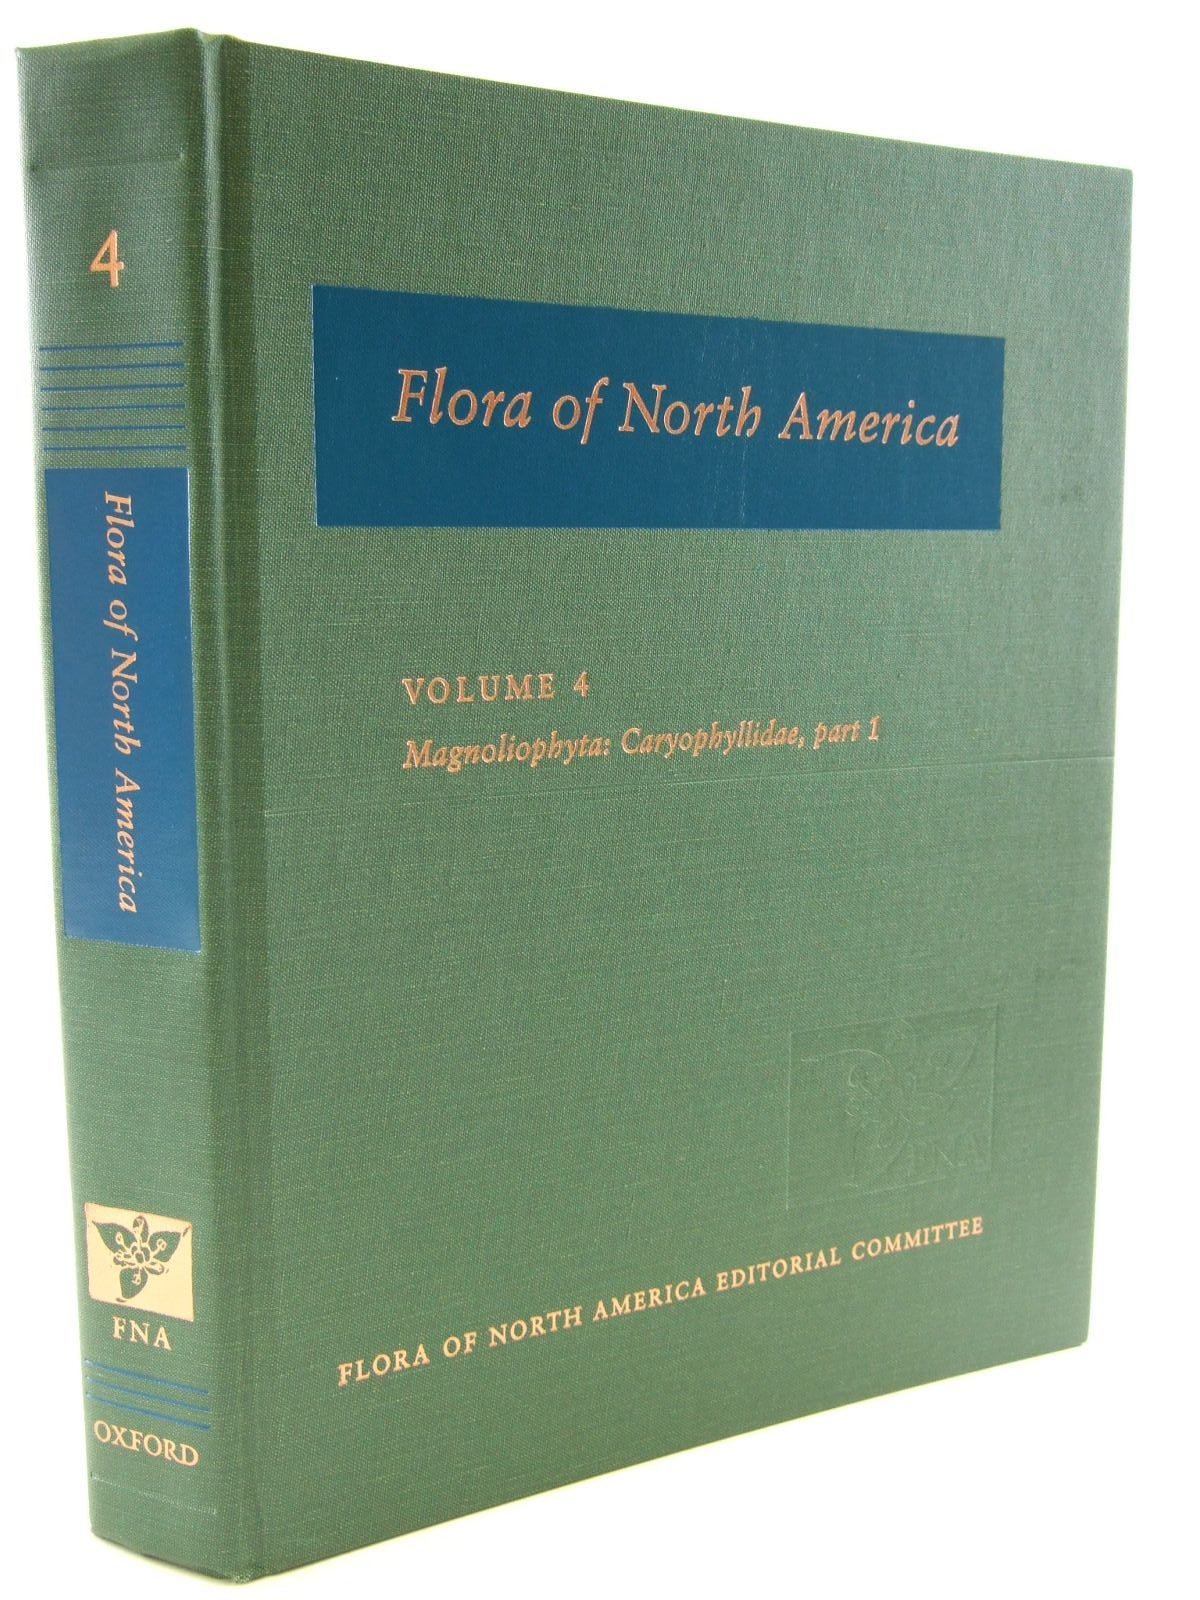 Photo of FLORA OF NORTH AMERICA VOLUME 4 MAGNOLIOPHYTA: CARYOPHYLLIDAE, PART 1 published by Oxford University Press (STOCK CODE: 1206574)  for sale by Stella & Rose's Books